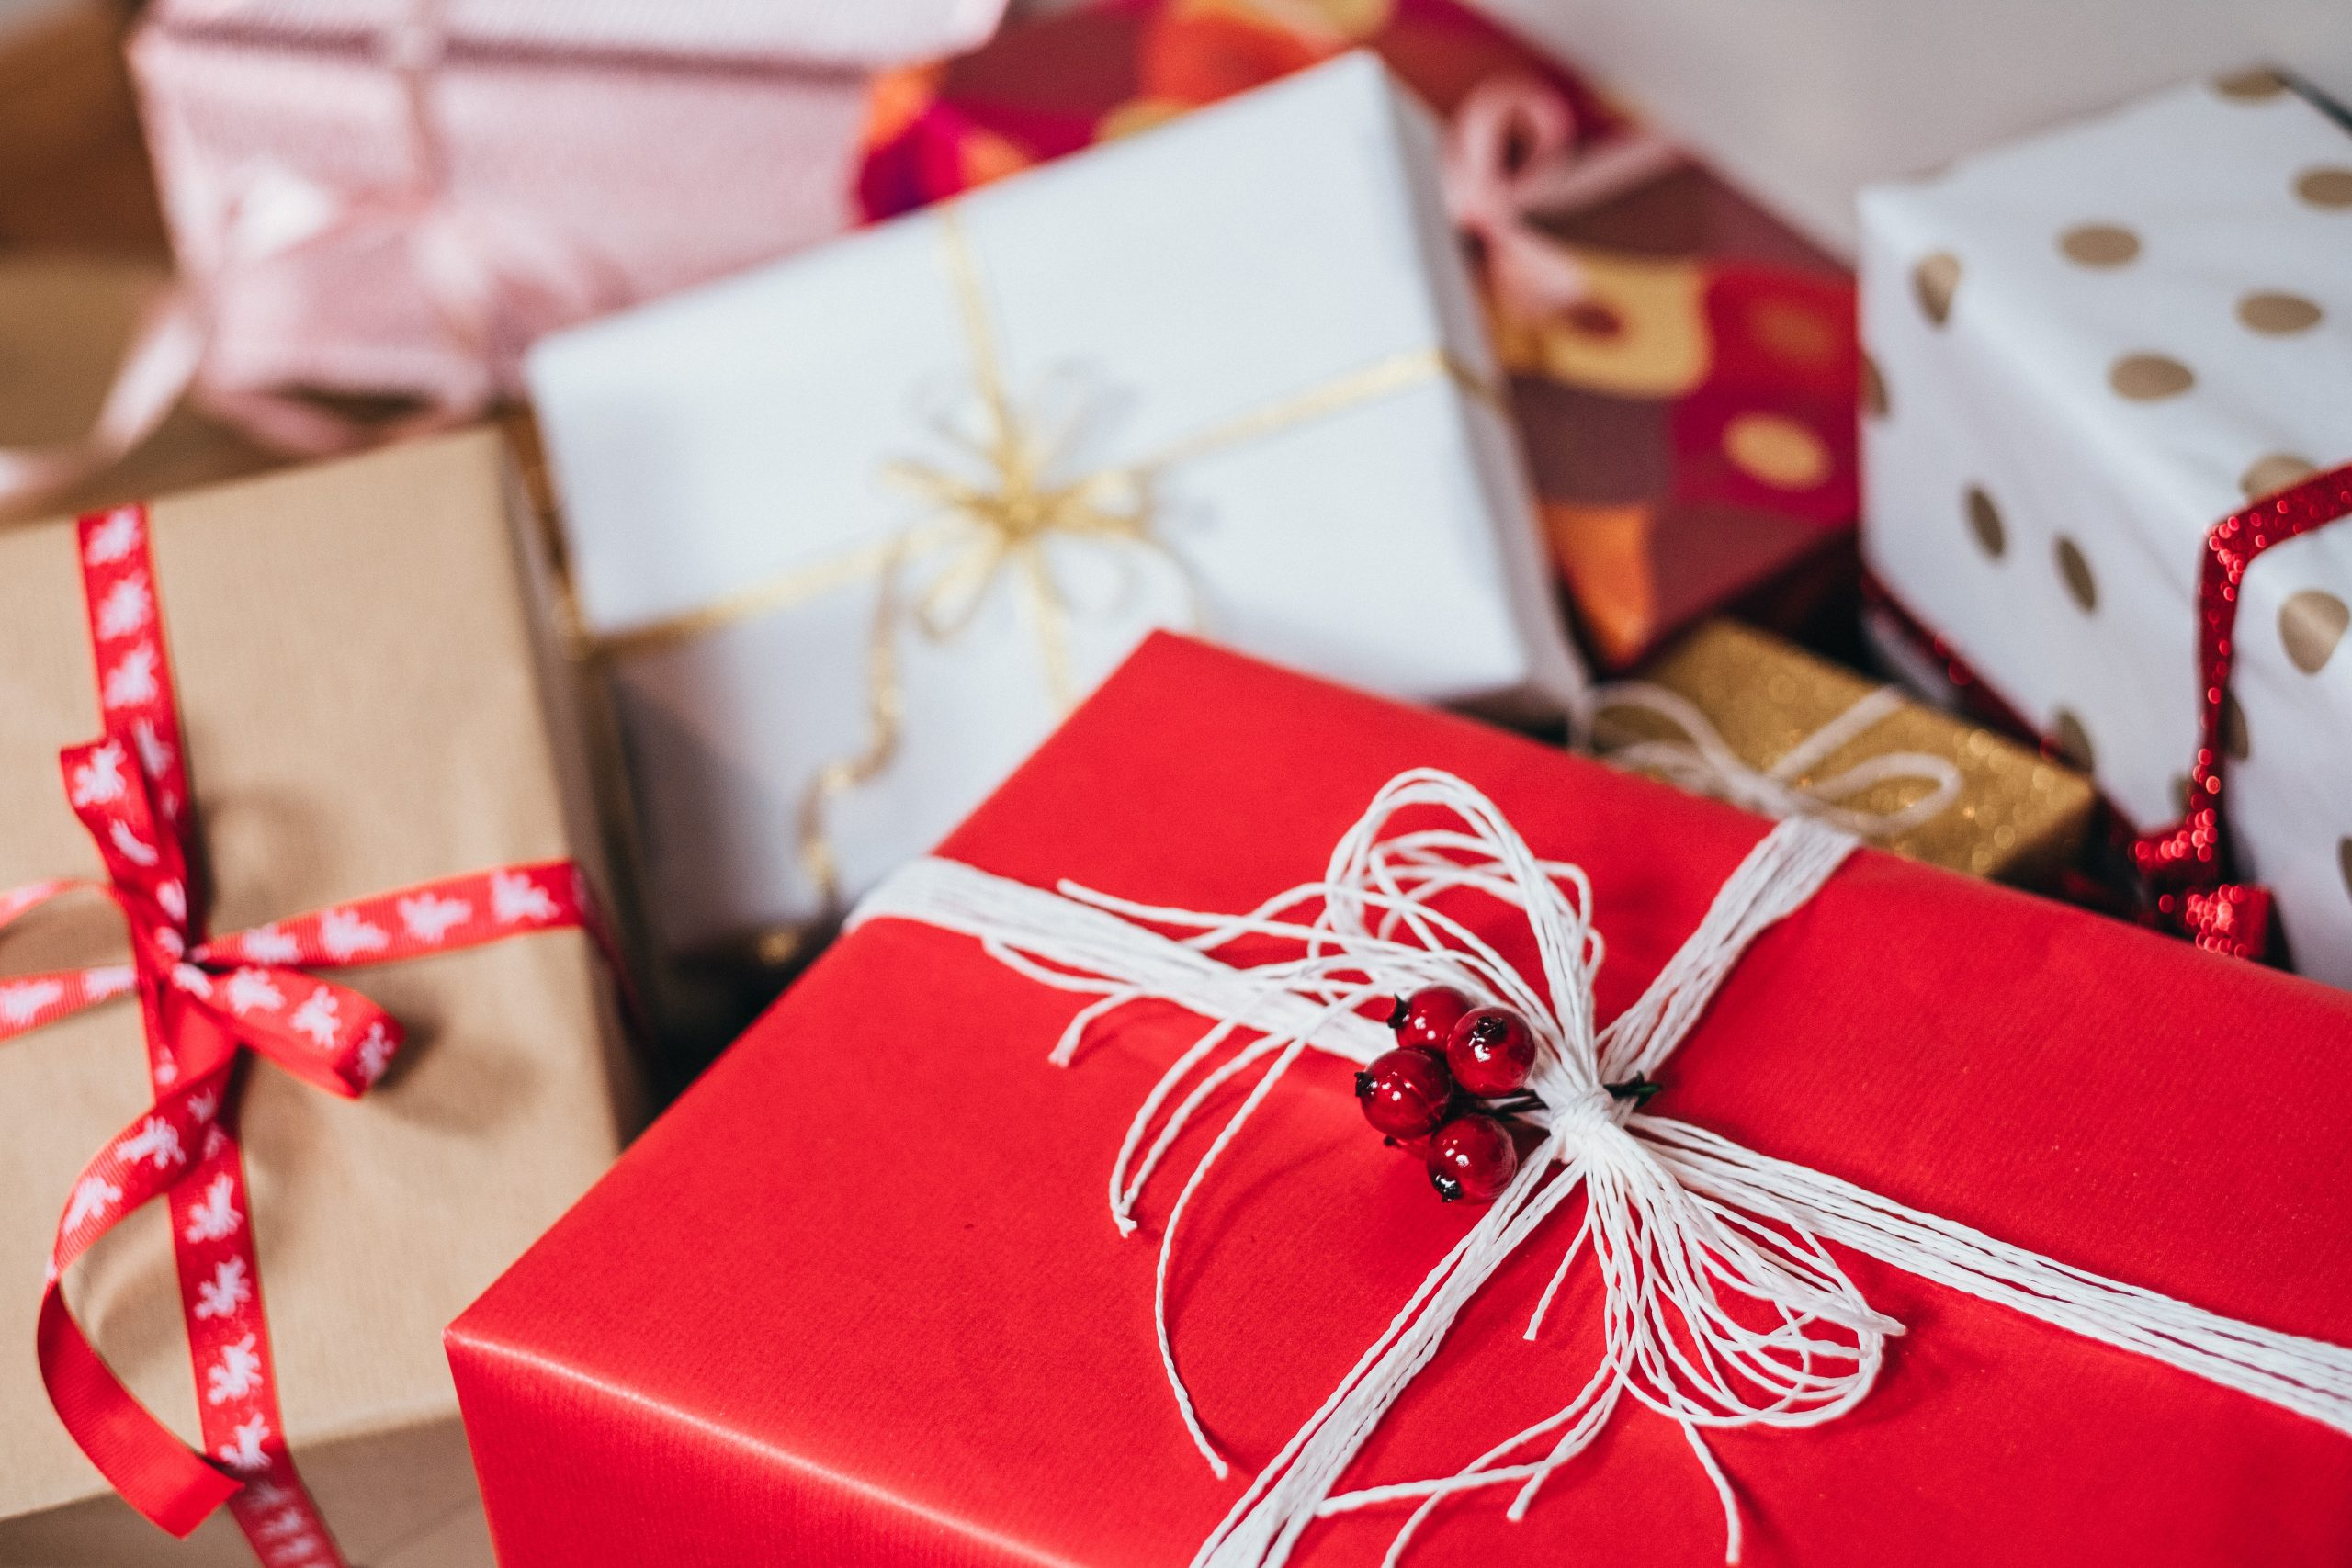 How to Gain a Marketing Advantage During the Holiday Season